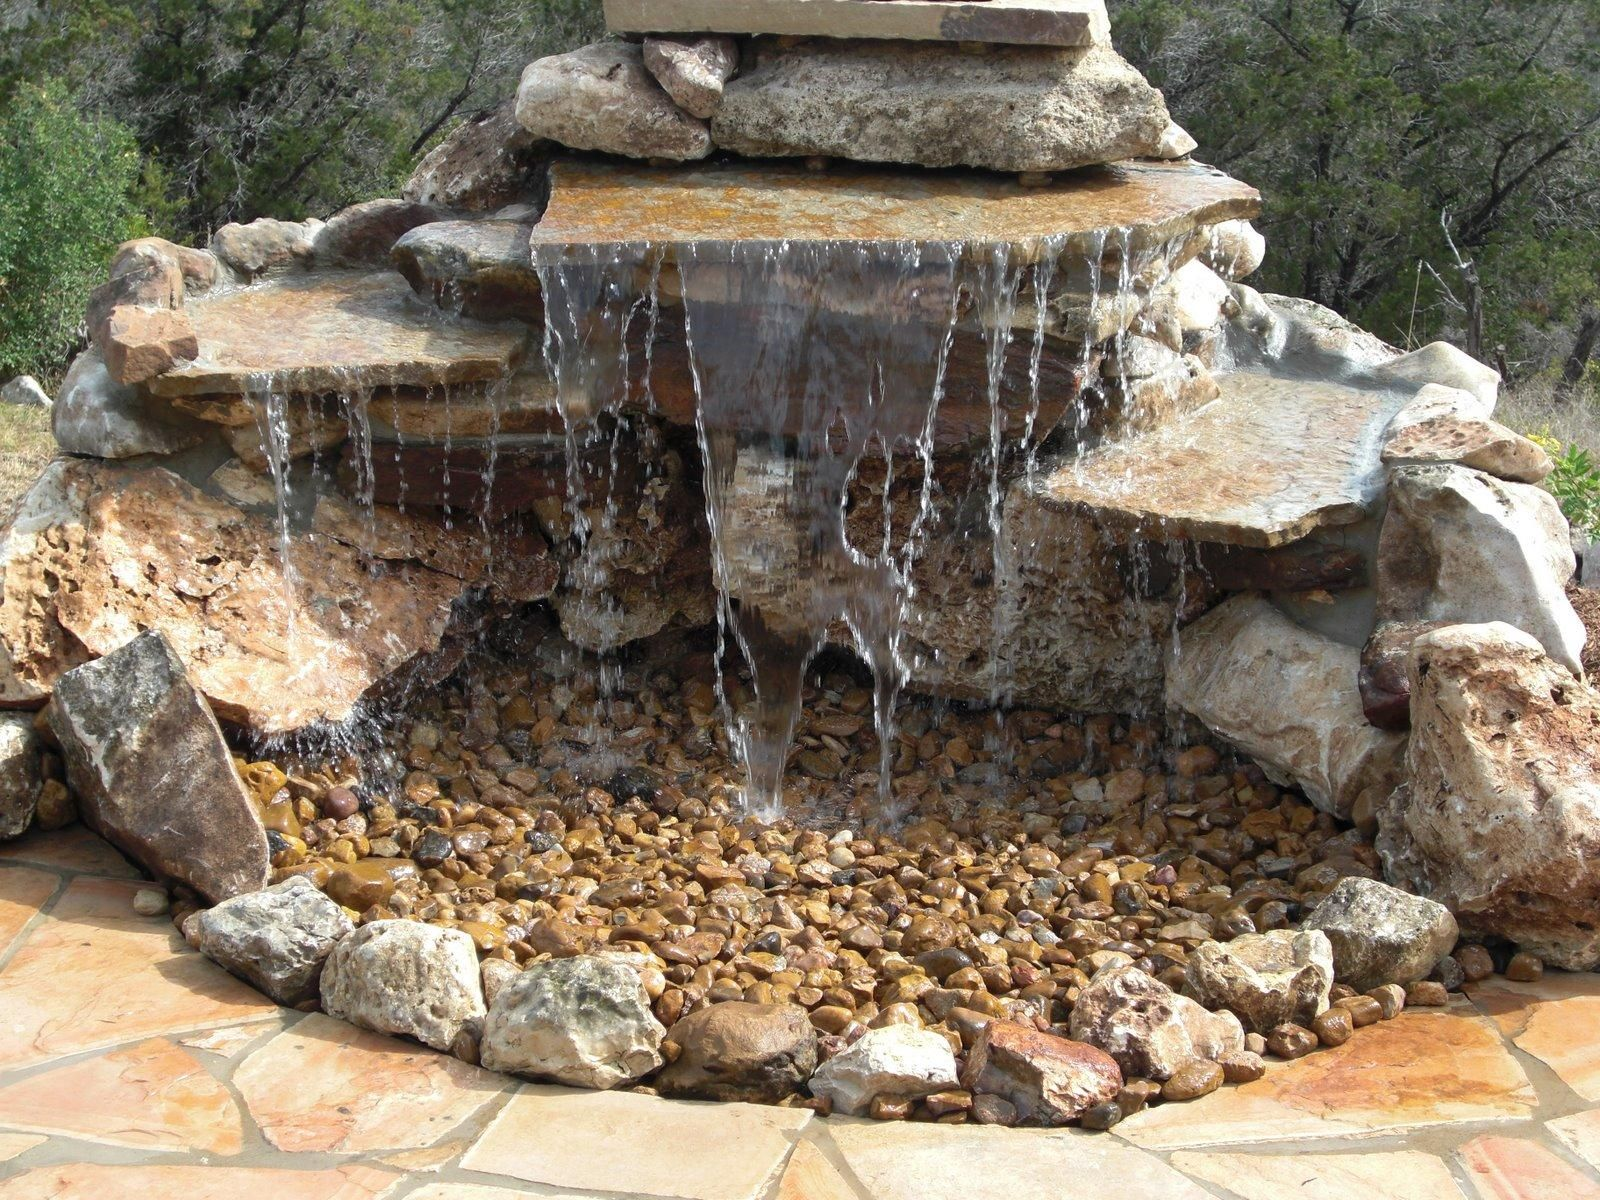 Directions For Installing A Pondless Waterfall Without